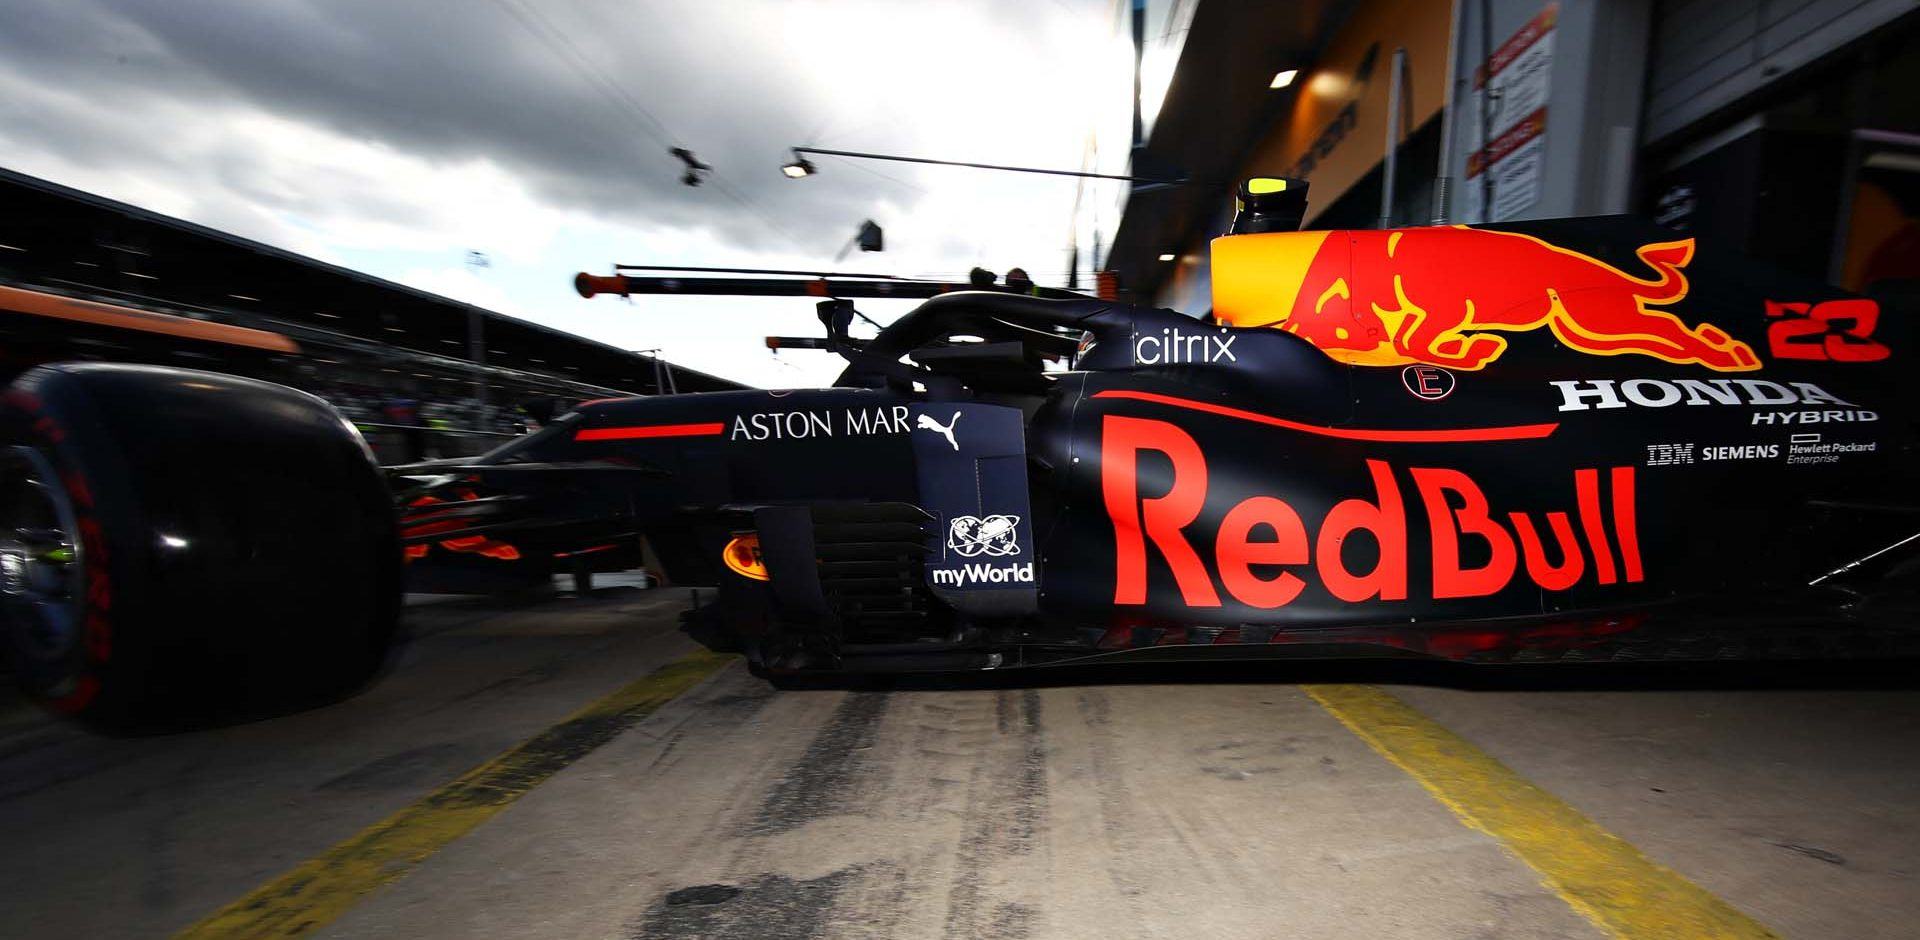 NUERBURG, GERMANY - OCTOBER 10: Alexander Albon of Thailand driving the (23) Aston Martin Red Bull Racing RB16 leaves the garage during qualifying ahead of the F1 Eifel Grand Prix at Nuerburgring on October 10, 2020 in Nuerburg, Germany. (Photo by Mark Thompson/Getty Images)